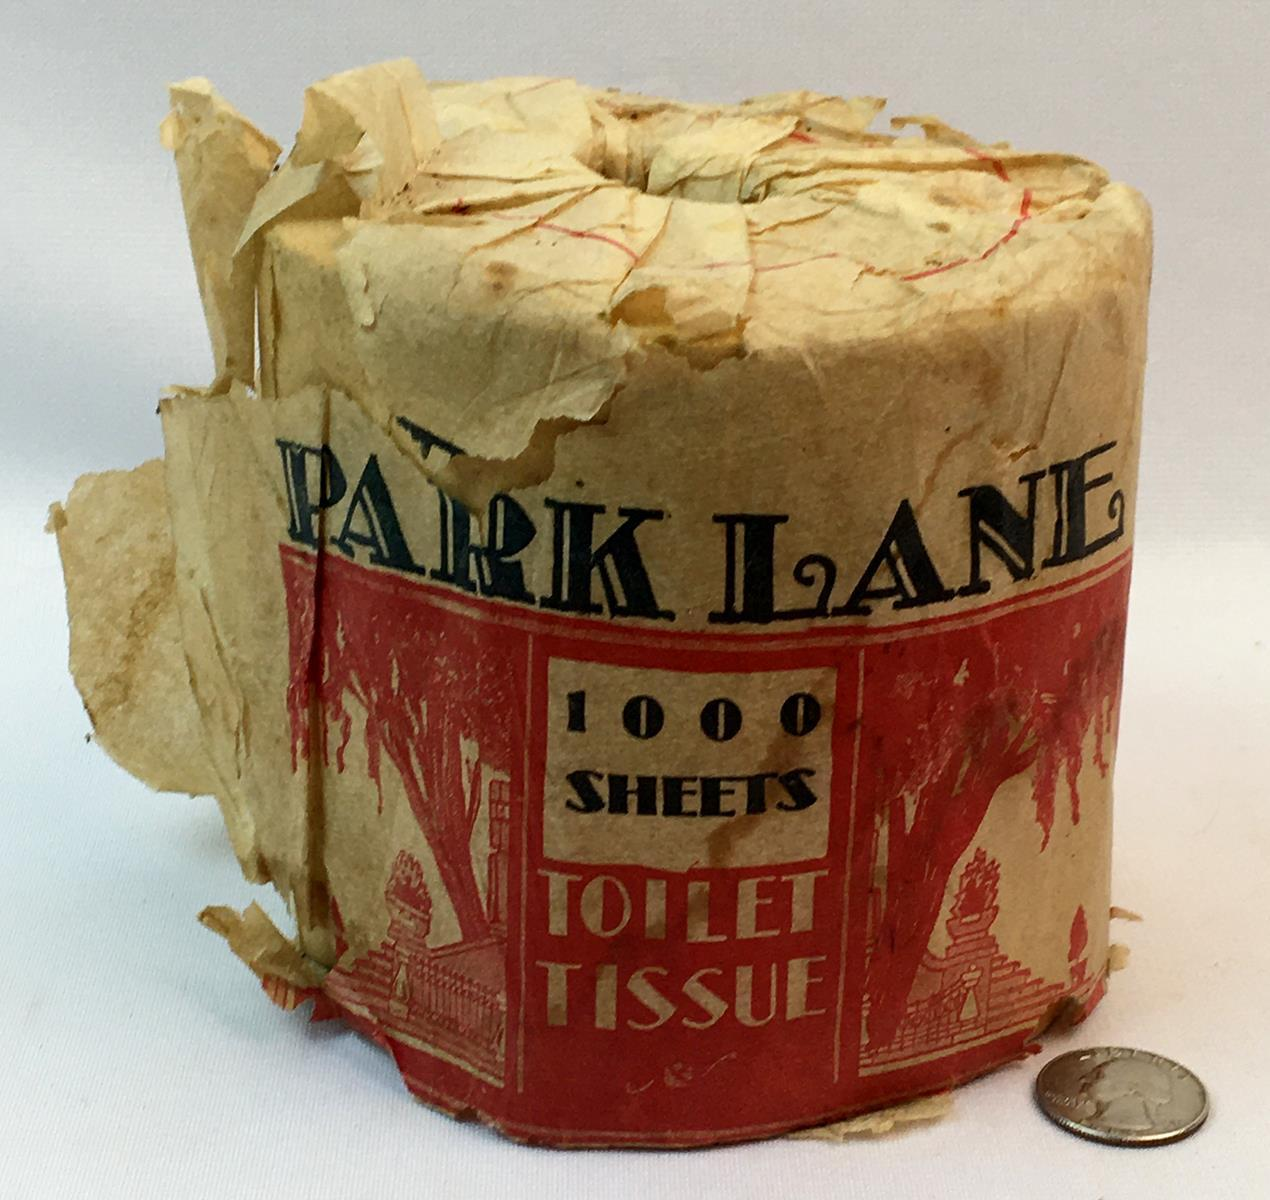 RARE Vintage c. 1920 Roll of Park Lane 1000 Sheets Toilet Tissue w/ Wrapping